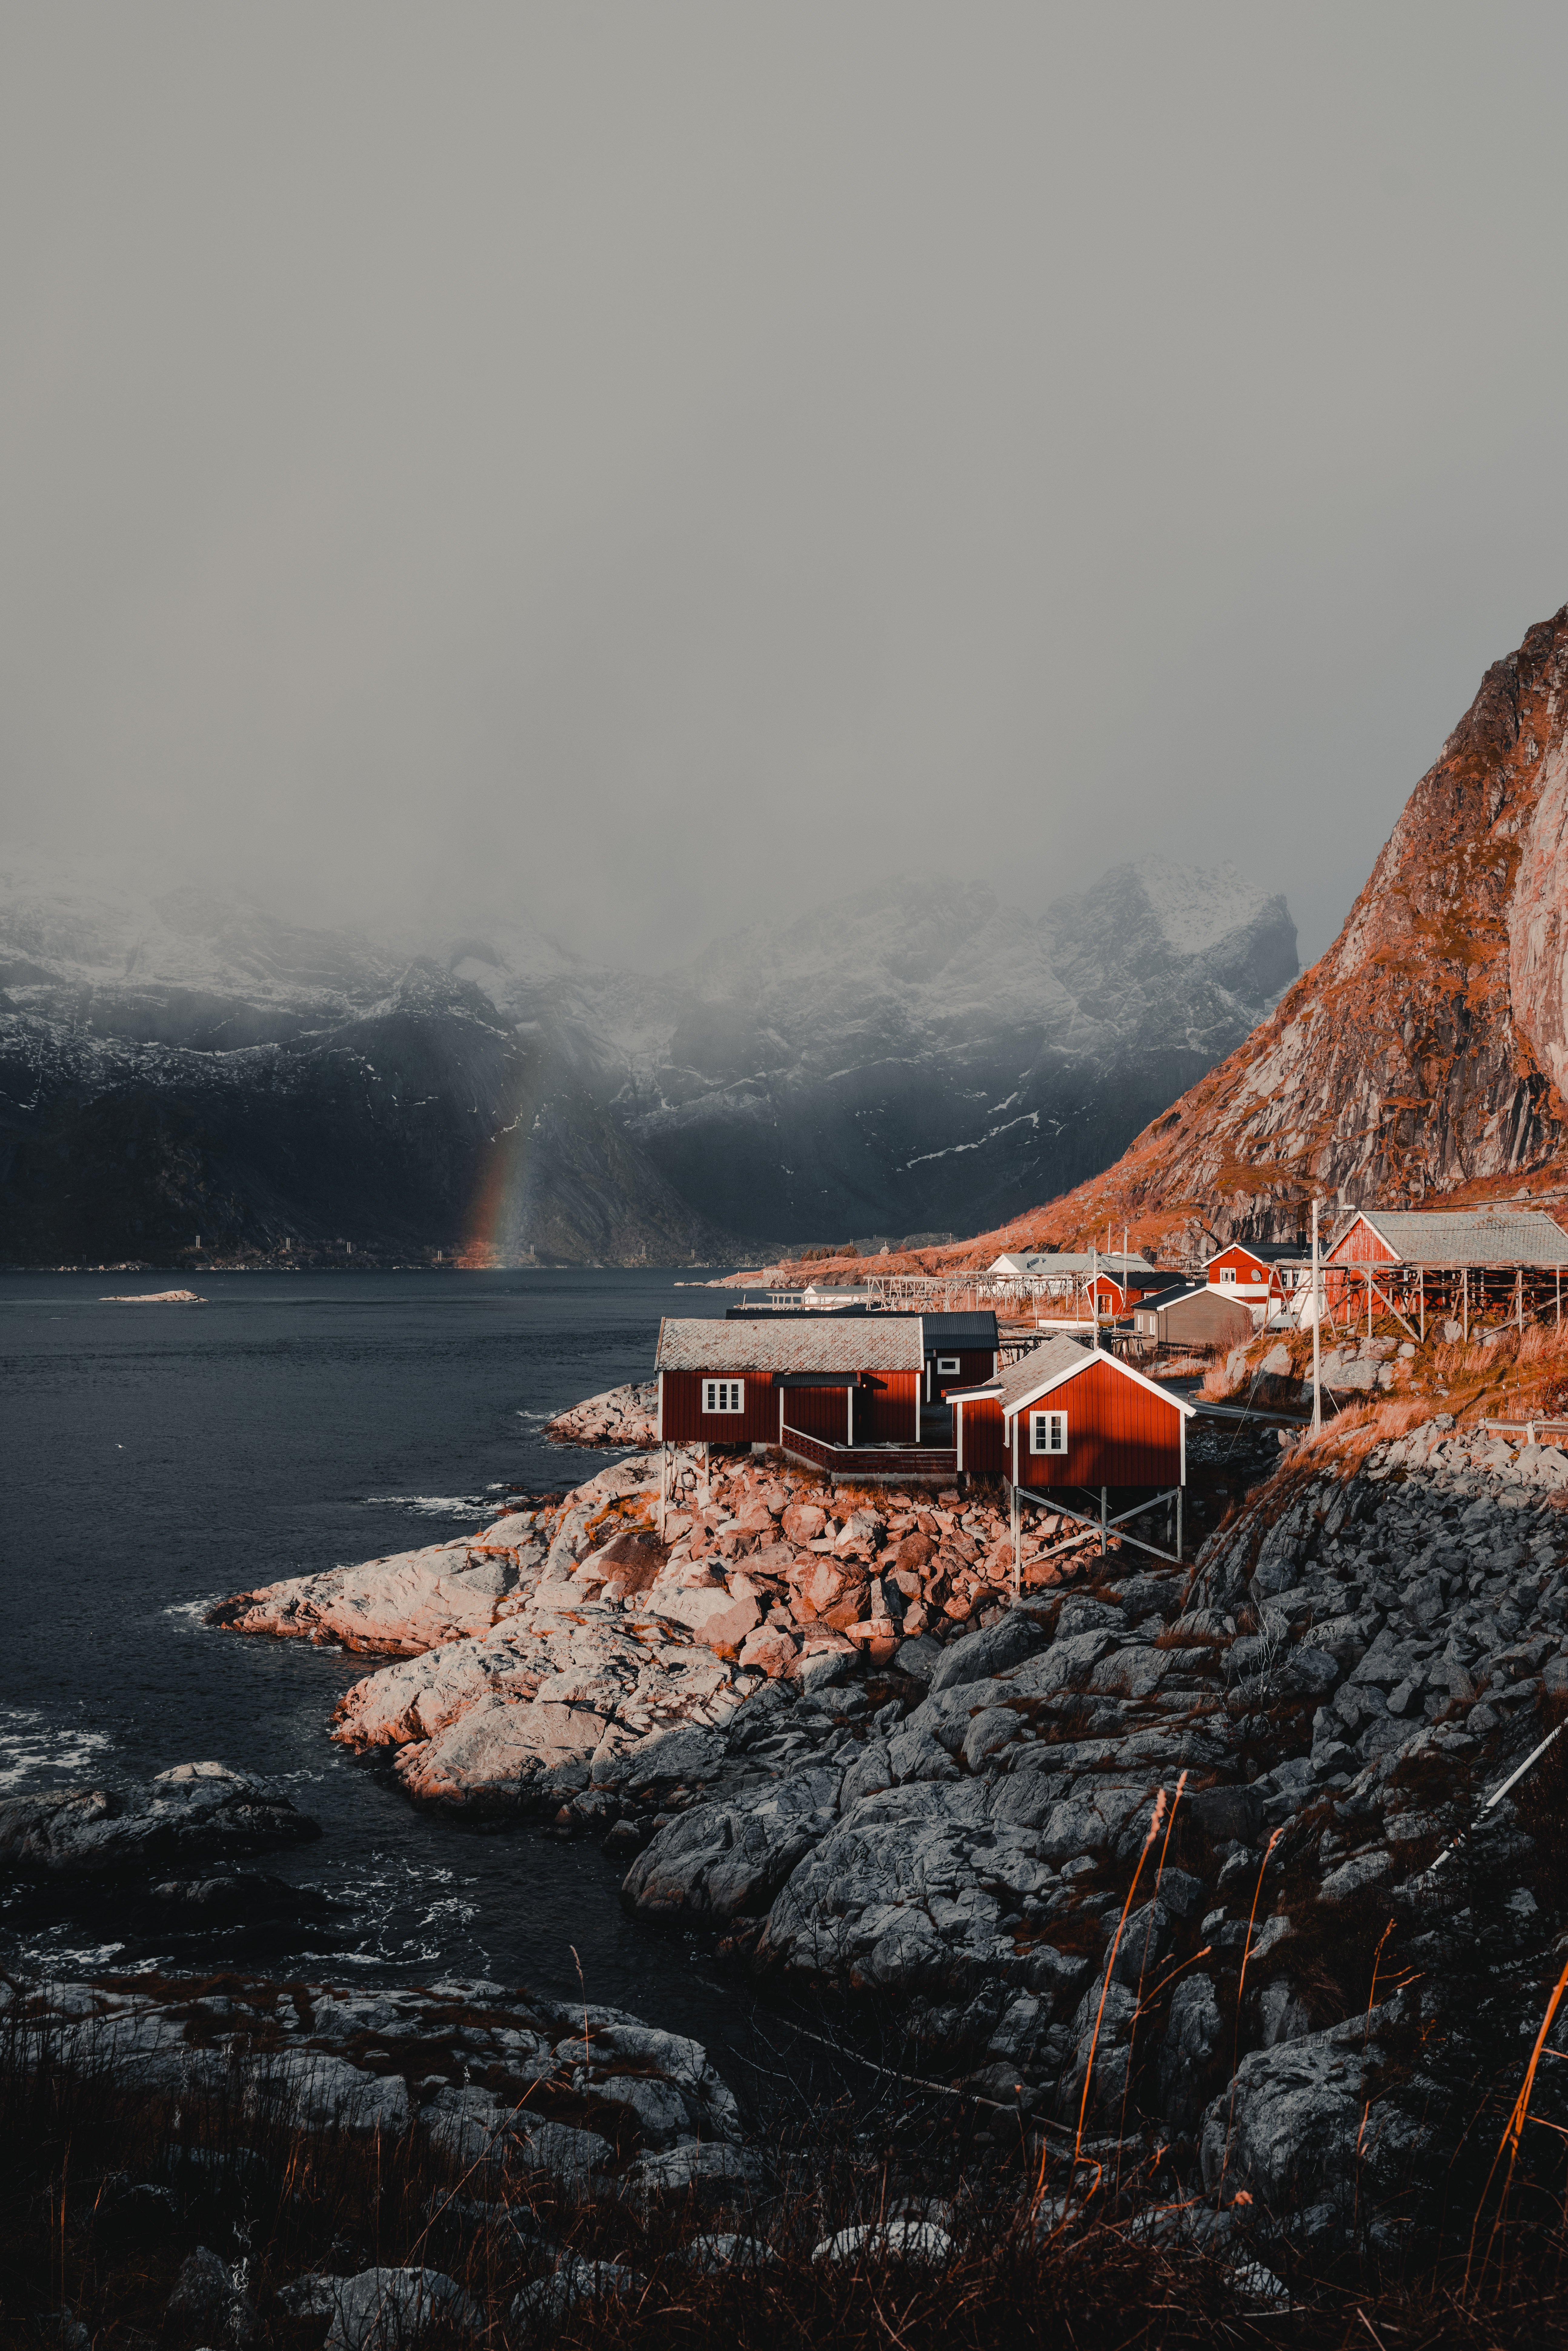 146496 download wallpaper Nature, Houses, Mountains, Rainbow, Fog, Norway, Small Houses, Lofoten Islands screensavers and pictures for free